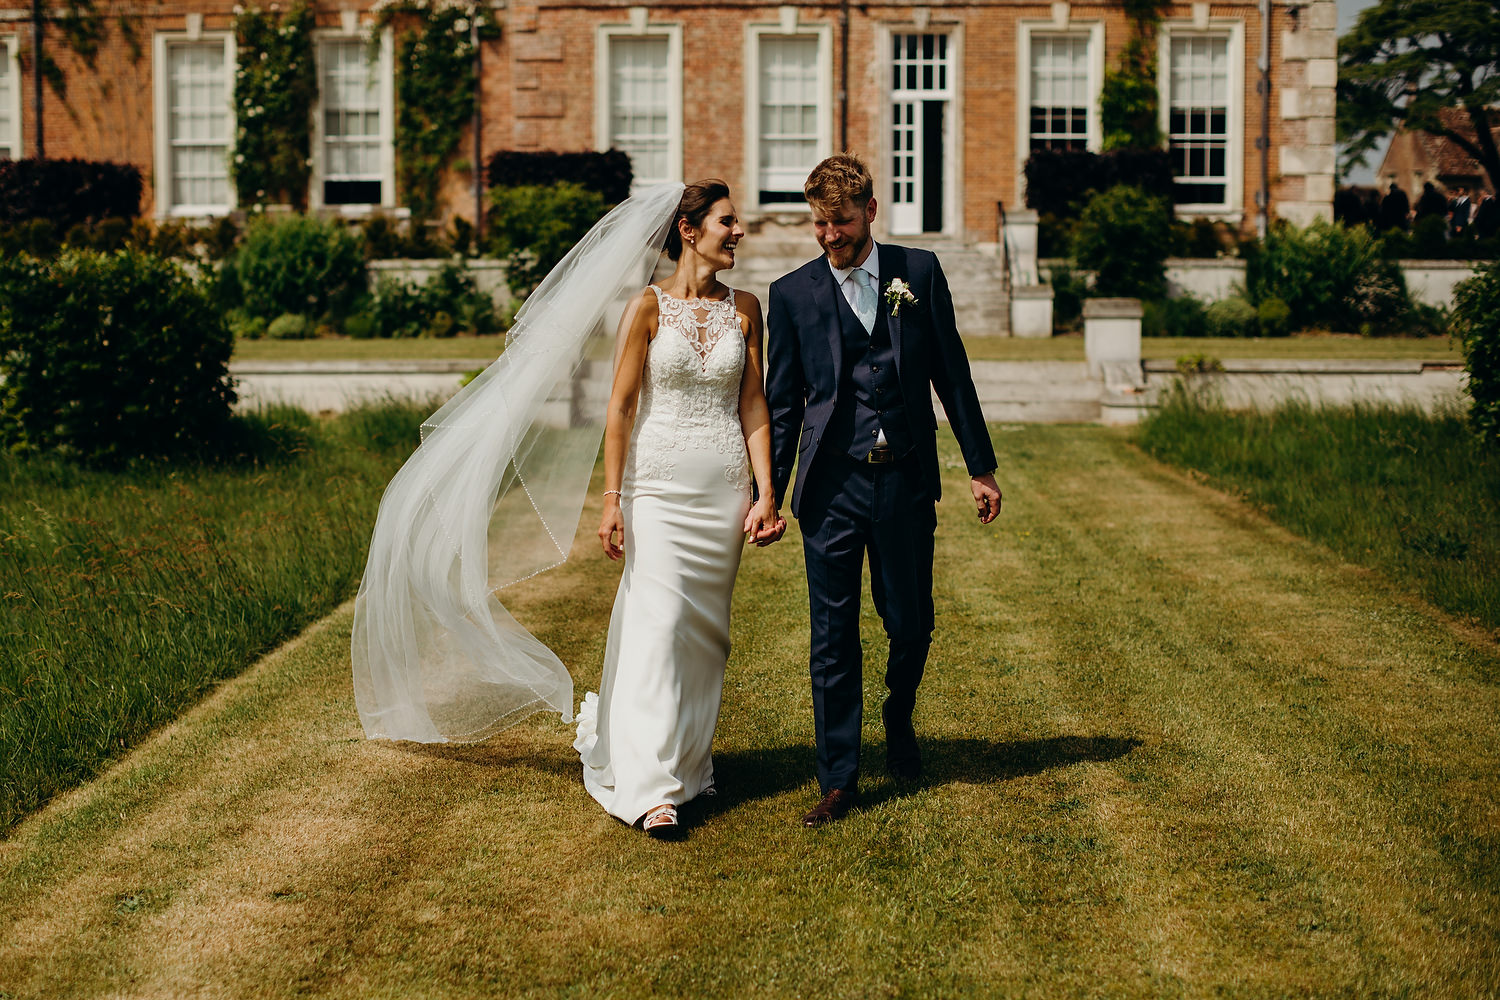 bride and groom walking on grounds of estate